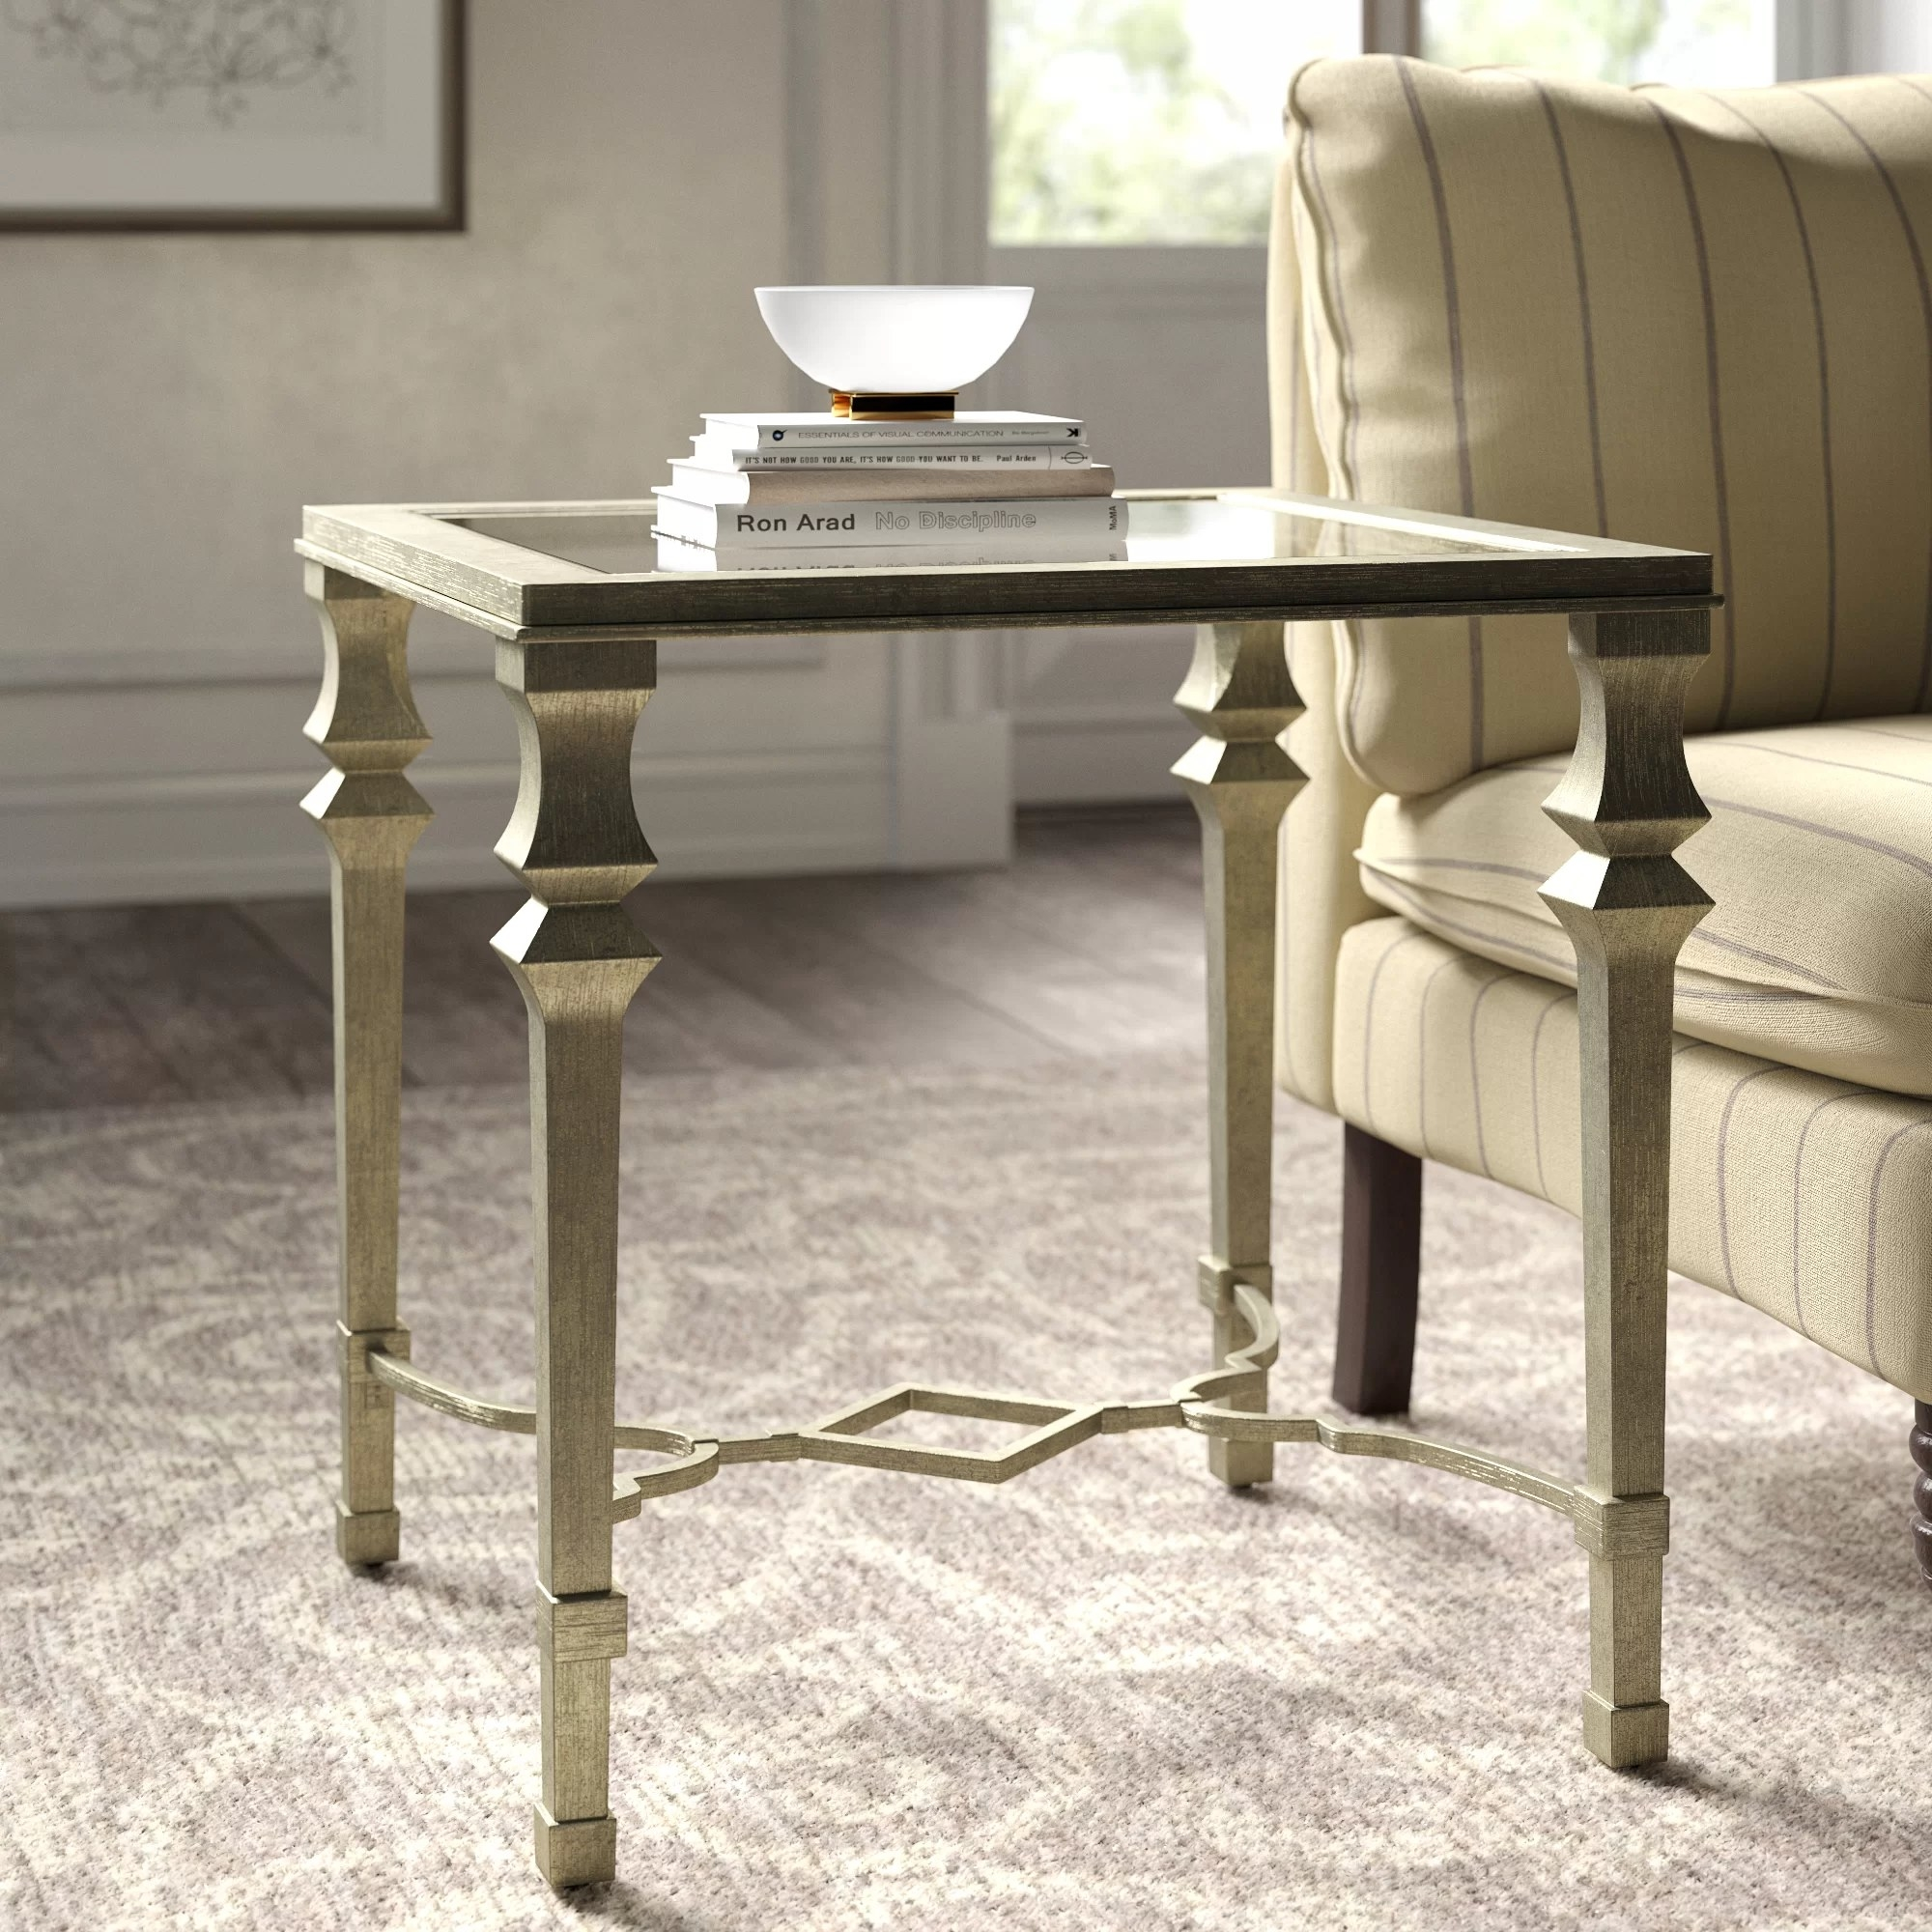 The square end table with a glass surface, silver frame and a cross design near the base in a living room